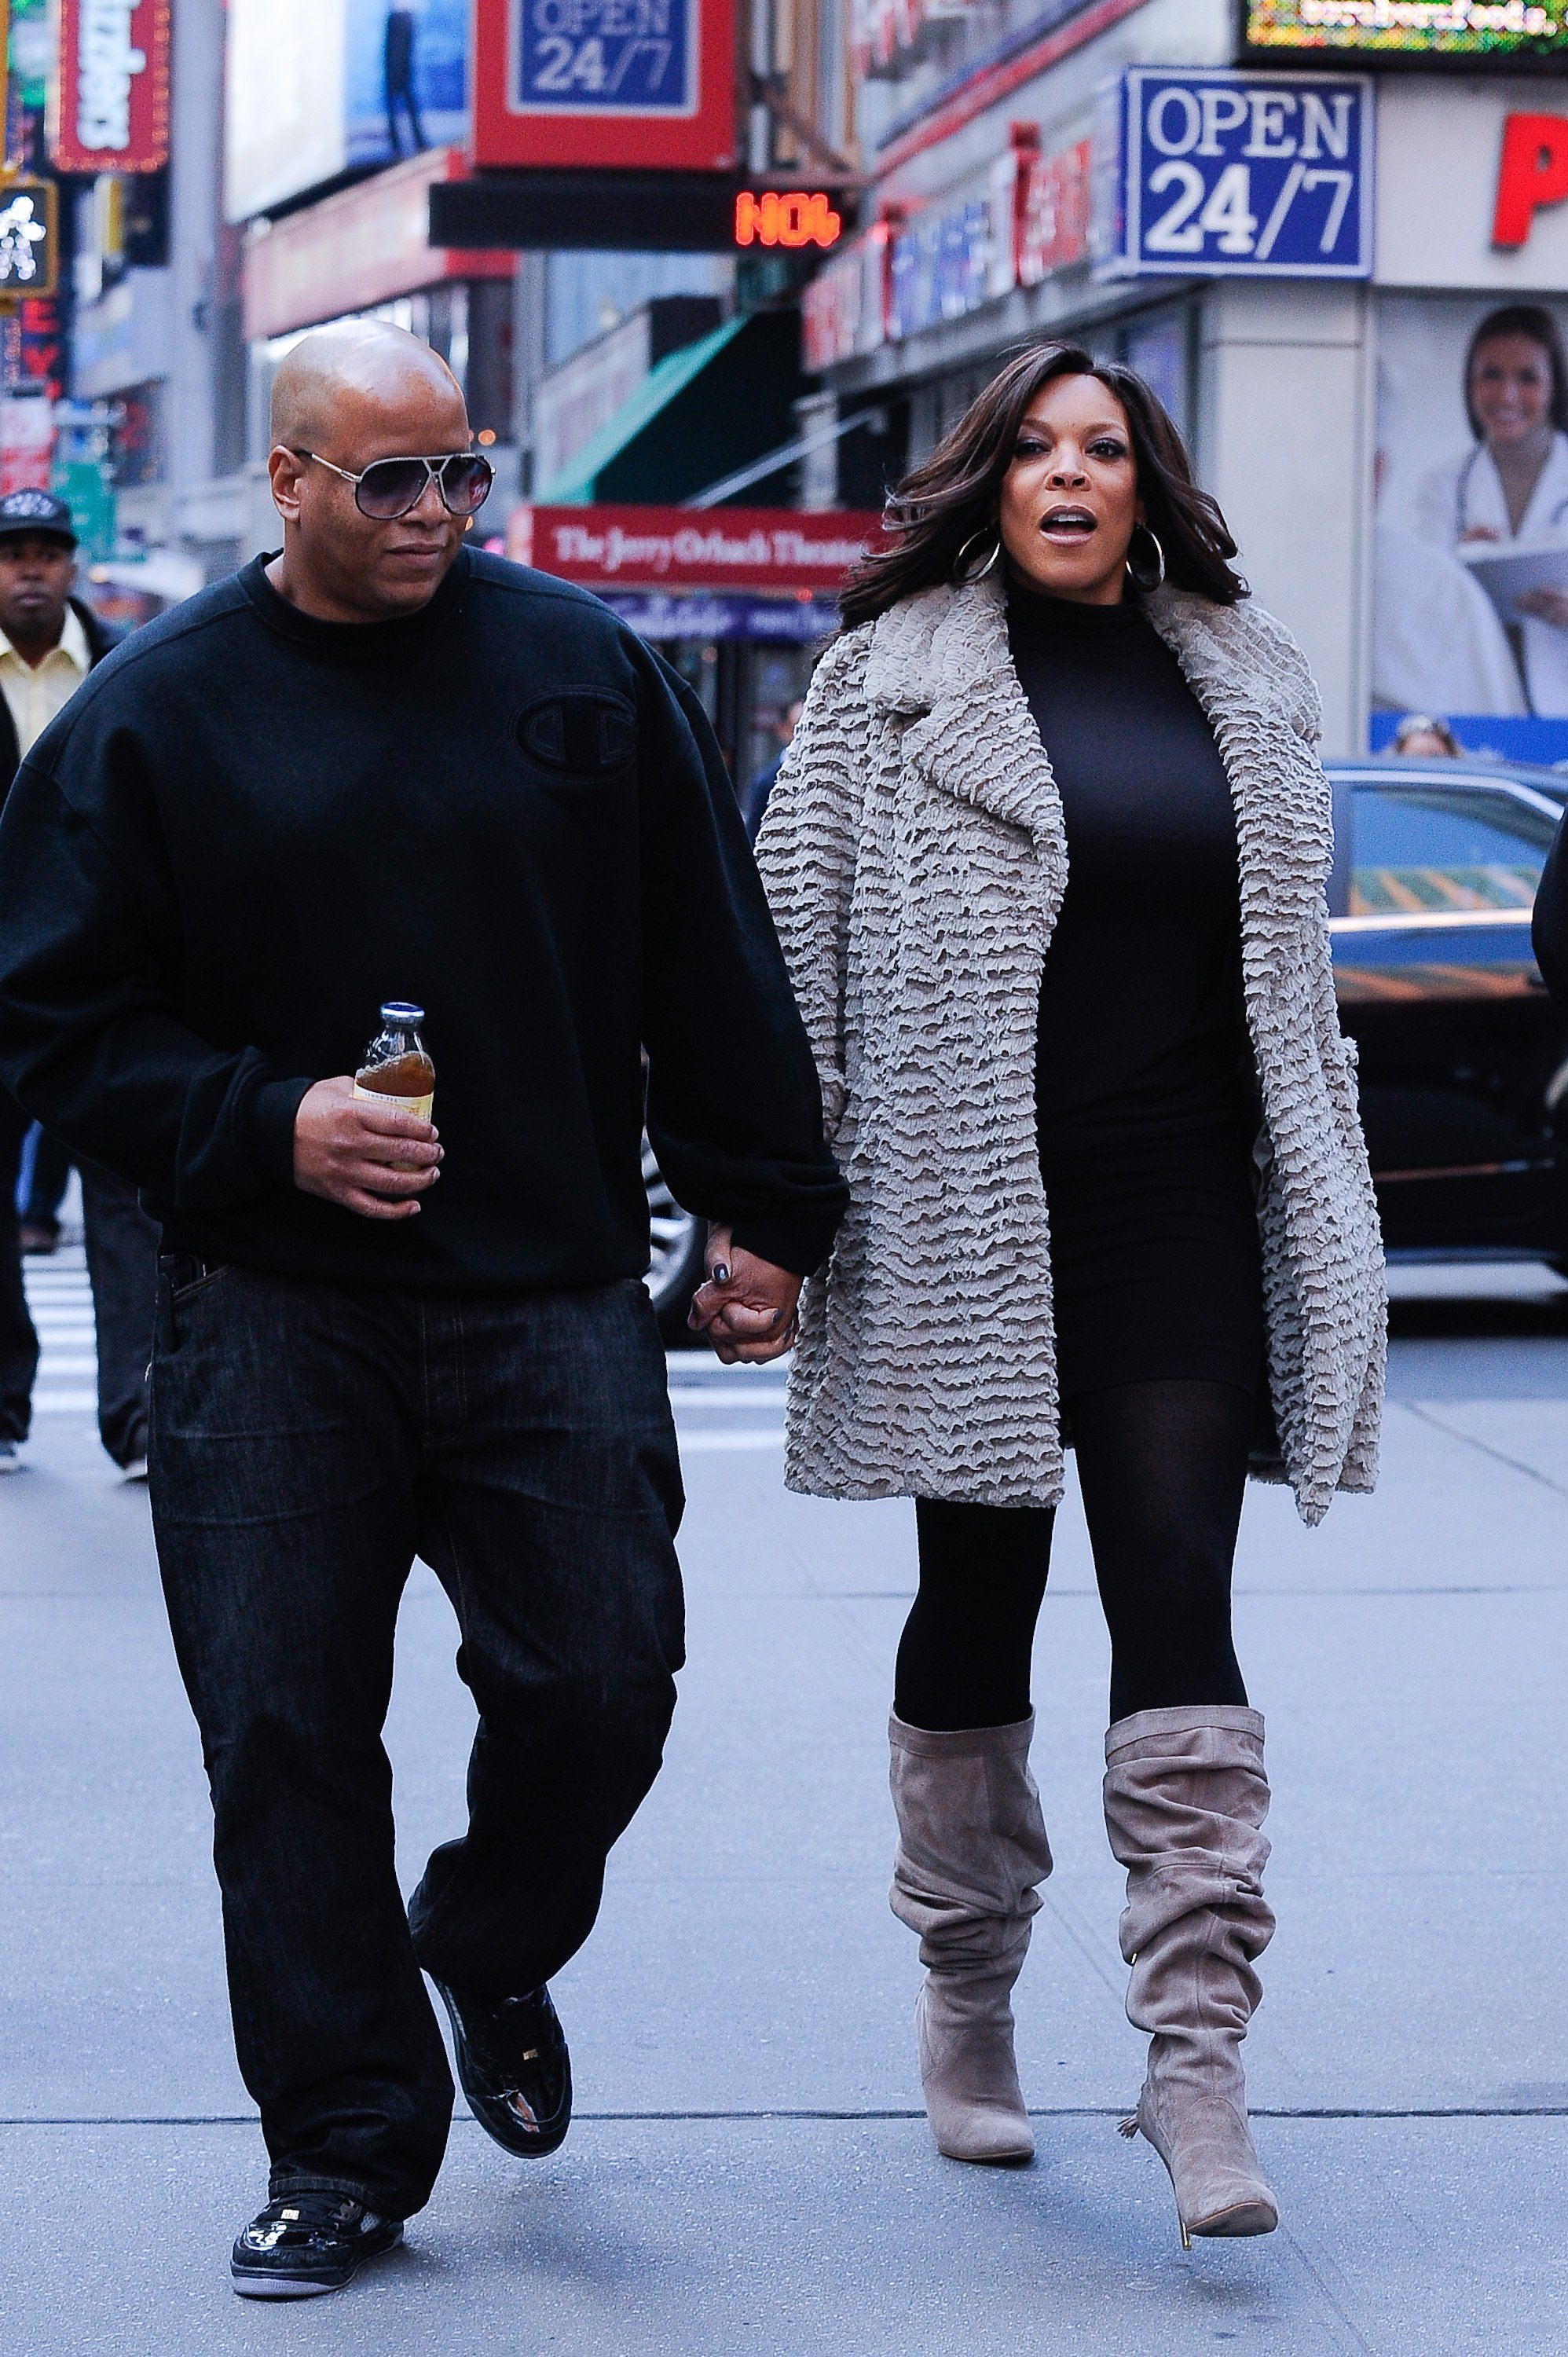 """Wendy Williams & Kevin Hunter leave the """"Celebrity Apprentice"""" film set in New York City on Oct. 19, 2010 